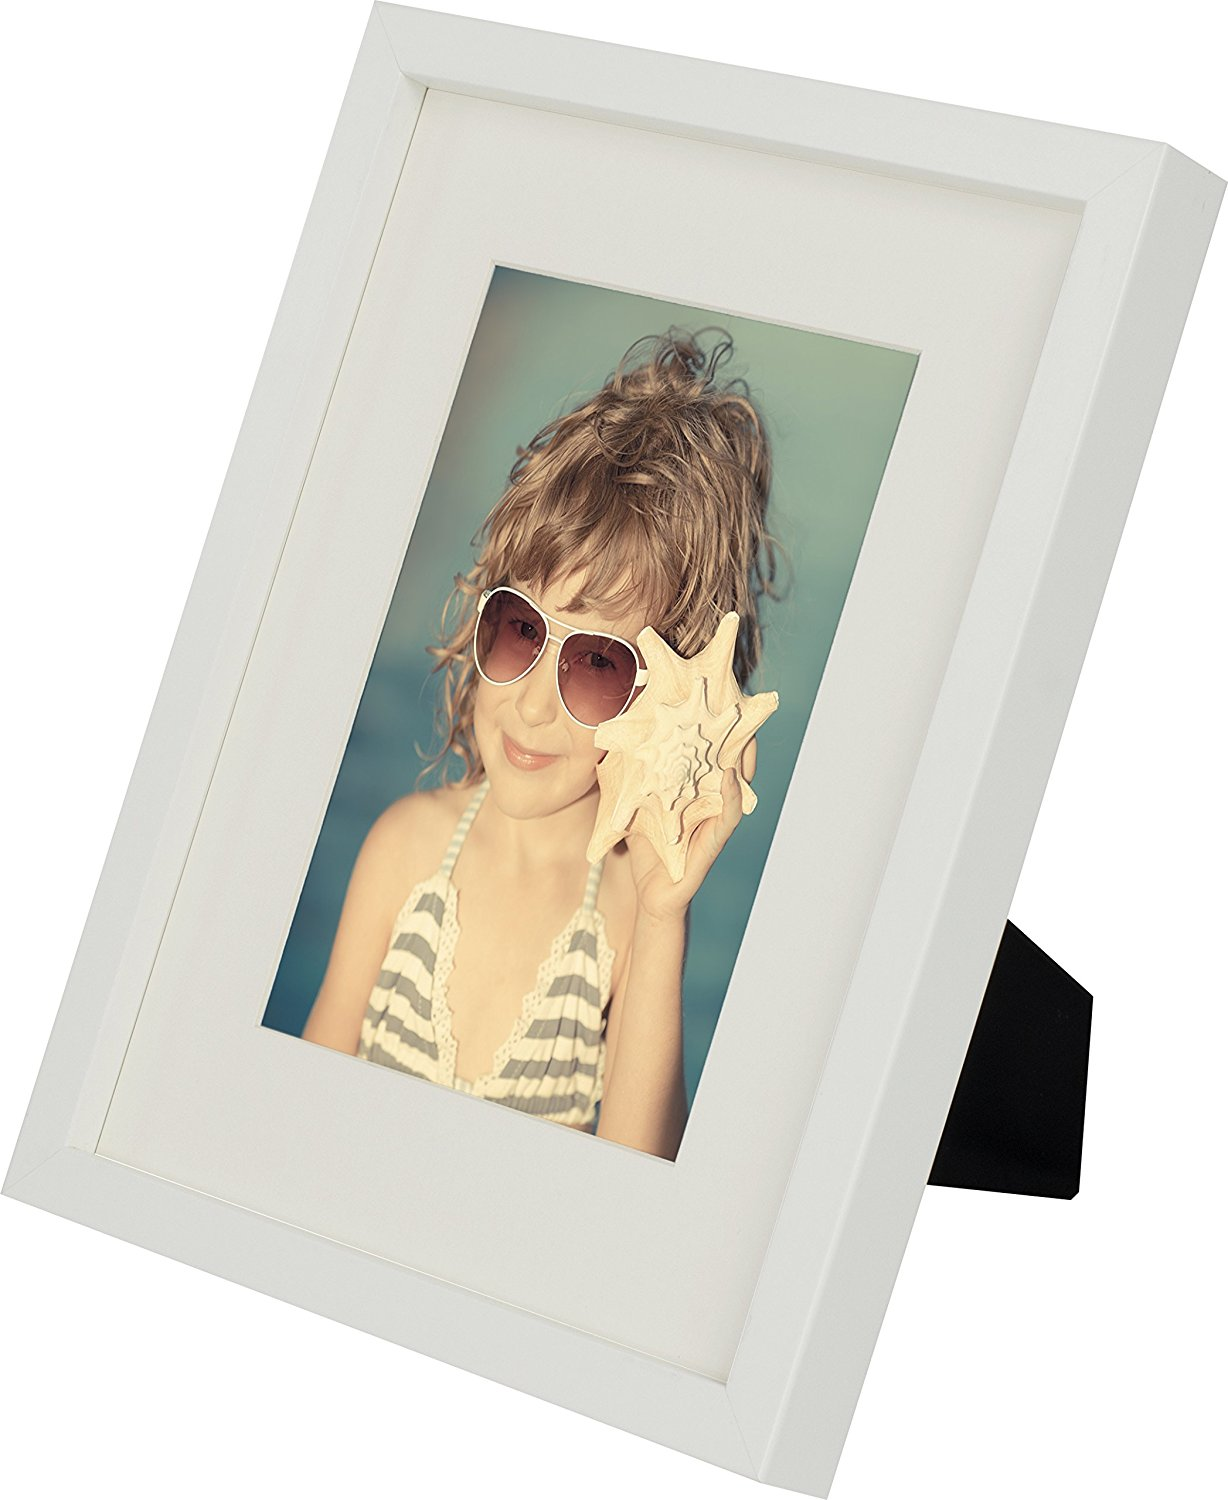 8 x 10-Inch Picture Photo Frame with mount for 5 x 7-Inch photo ...